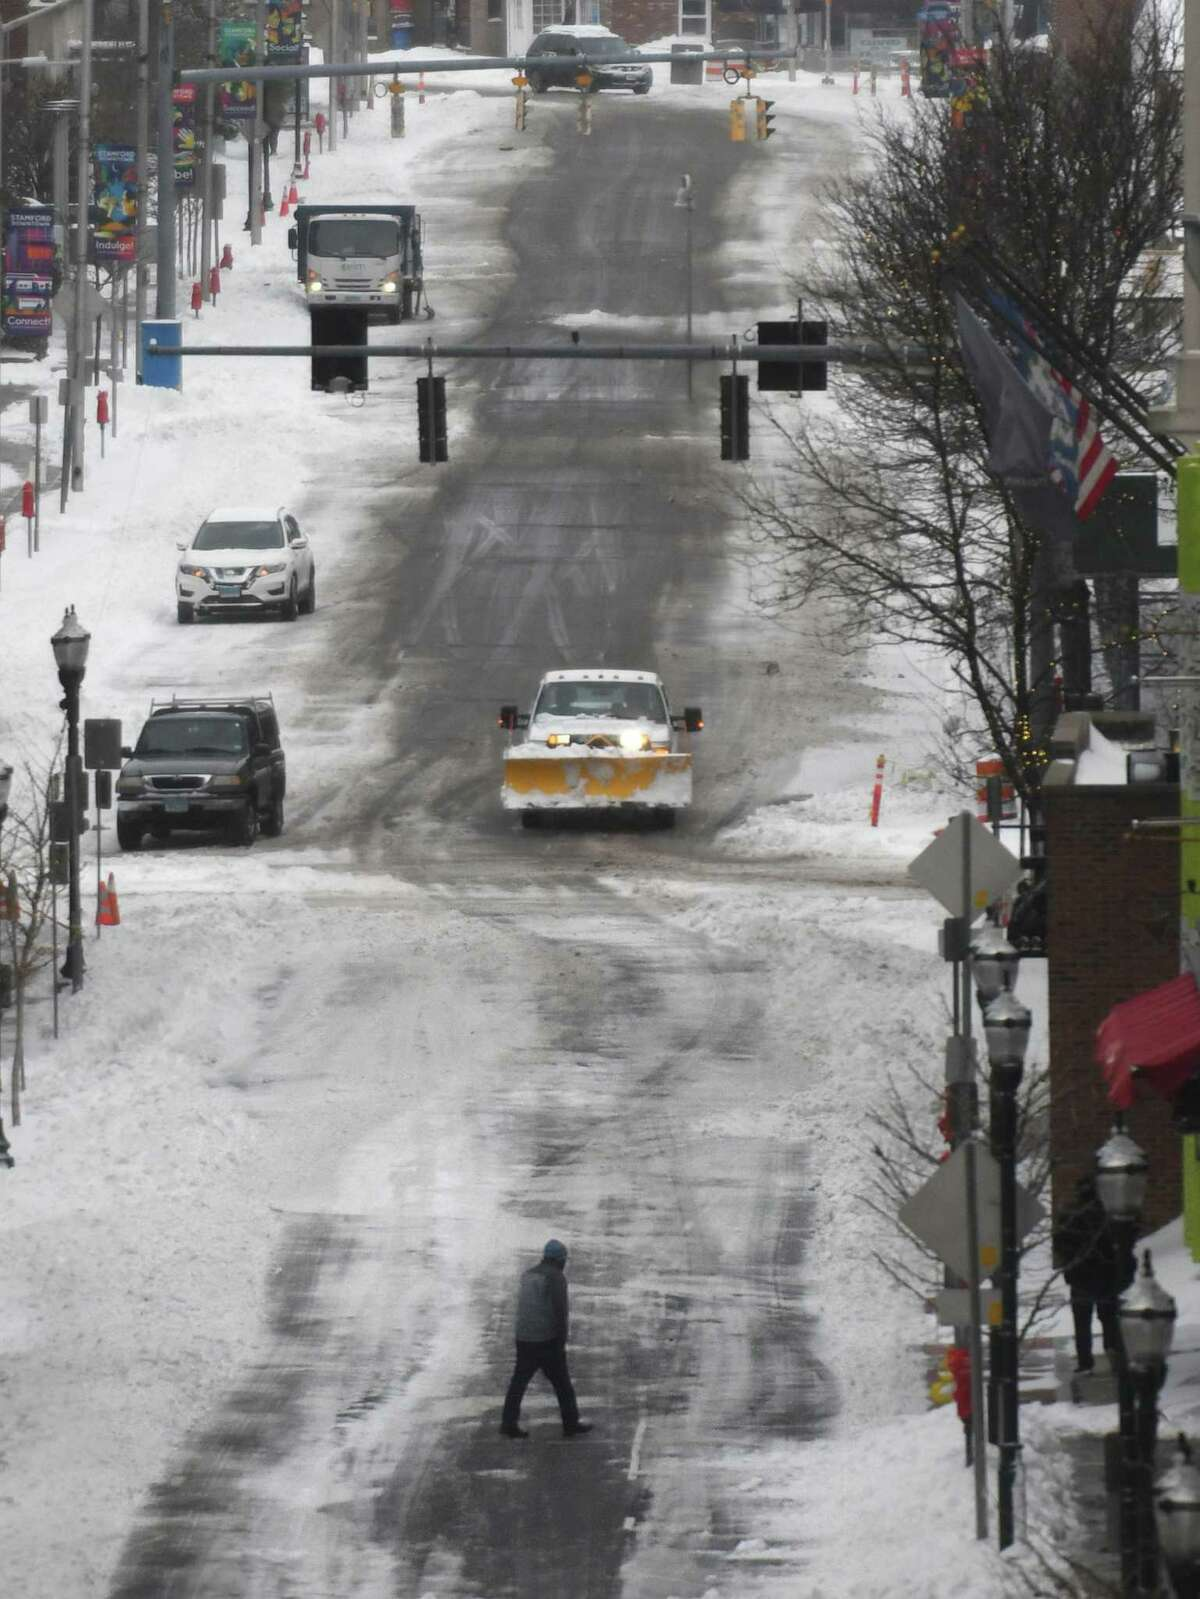 A file photo of a snow-covered street in Stamford, Conn., taken Thursday, Dec. 17, 2020. The city mainly saw rain during a storm that hit the state Sunday, Jan. 3, 2021.